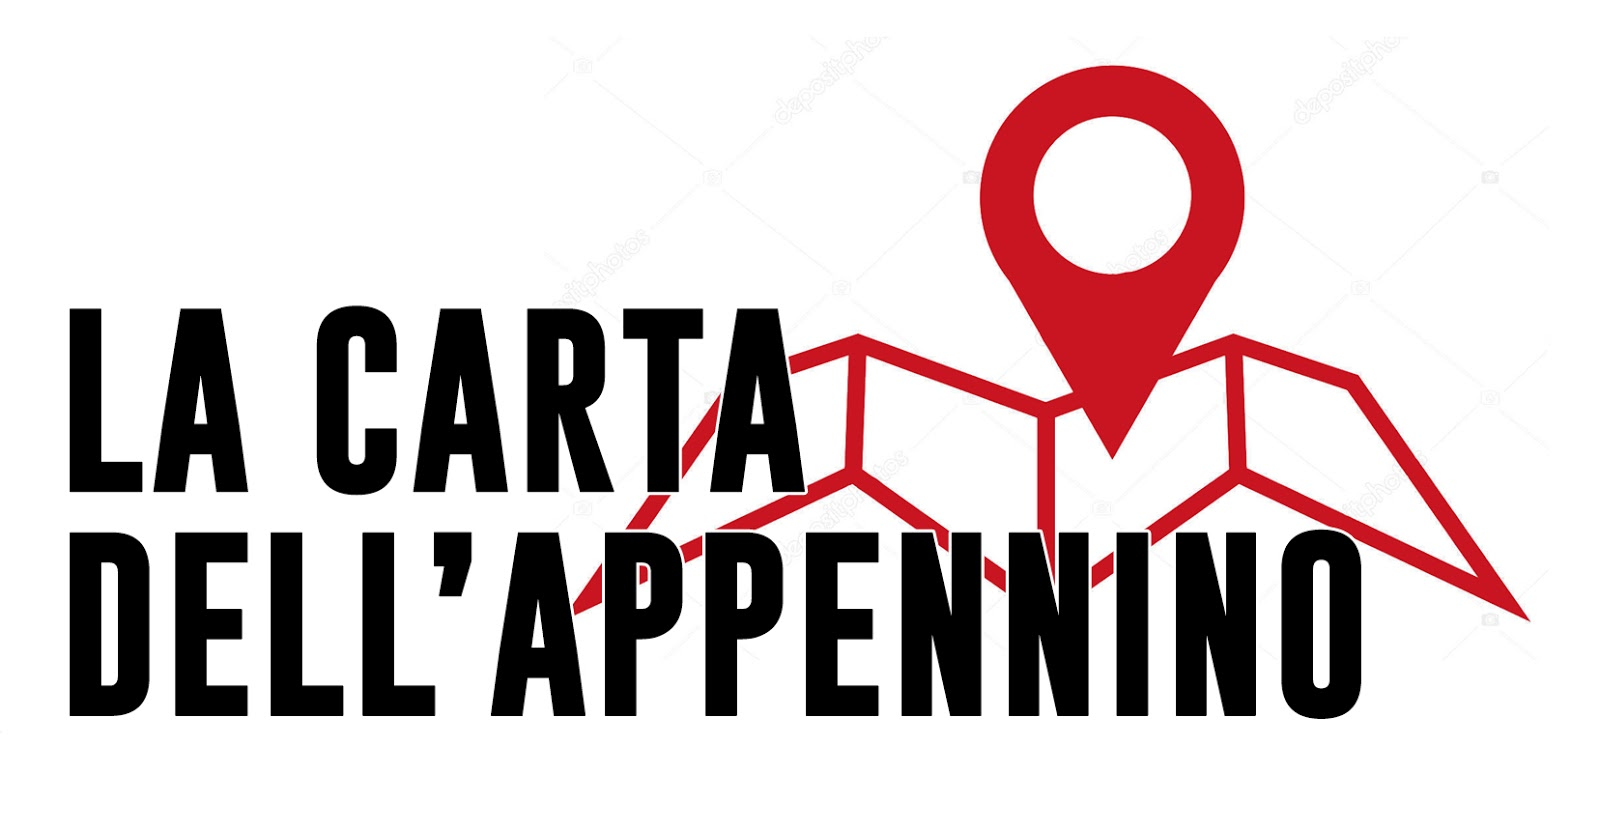 La Carta dell'Appennino